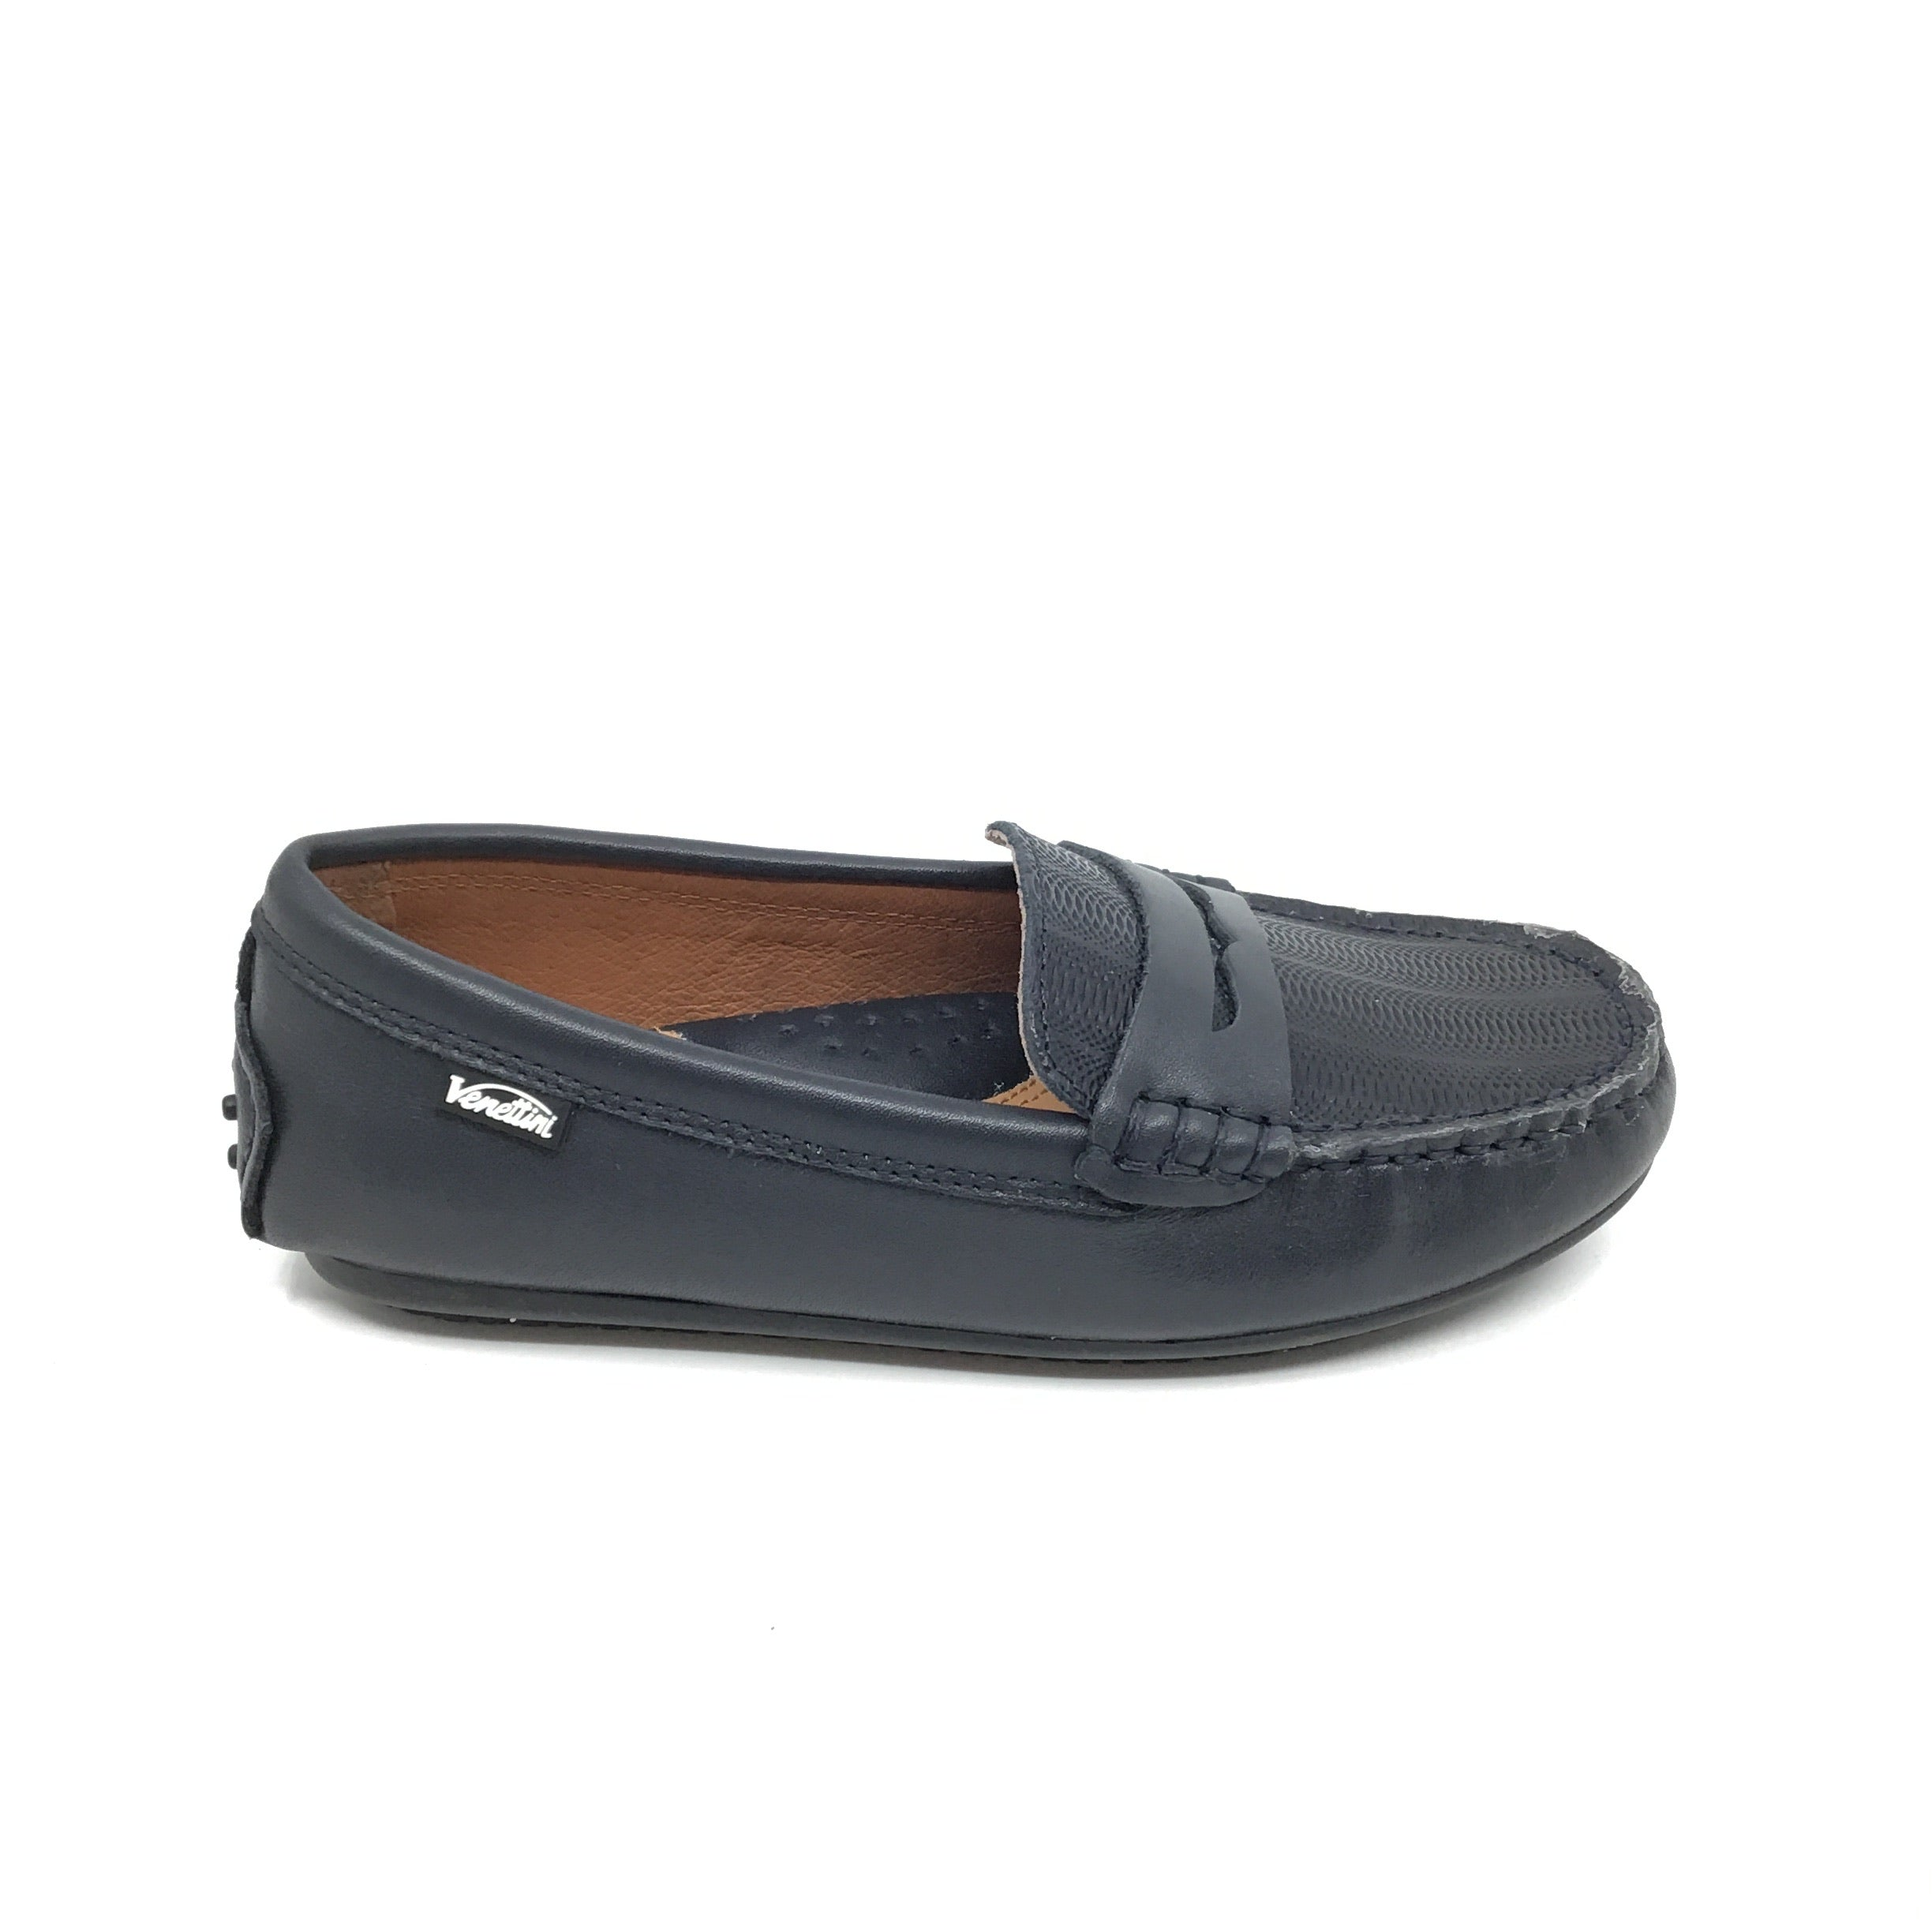 Venettini Navy Penny Loafer with Texture